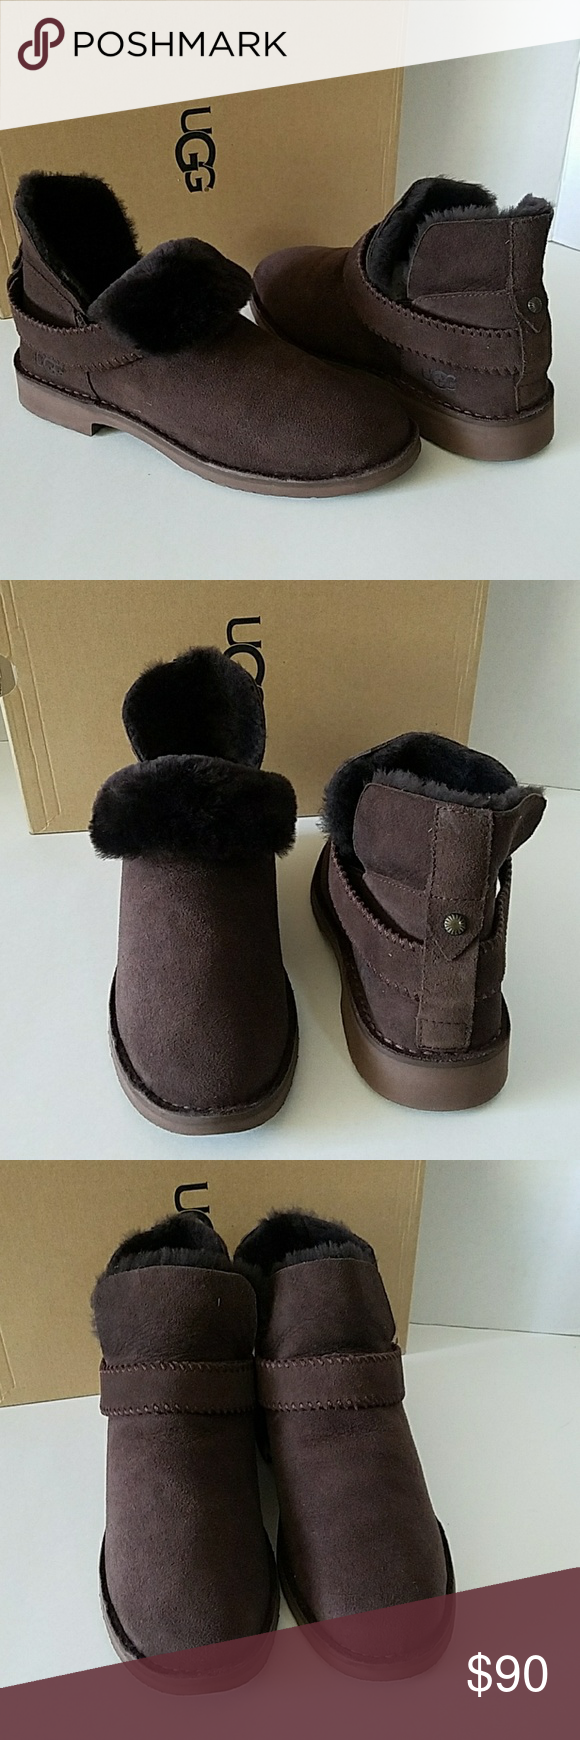 57302ba77e7 UGG Mckay Chocolate Suede Sheepskin Ankle Boots **Red mark on tags ...